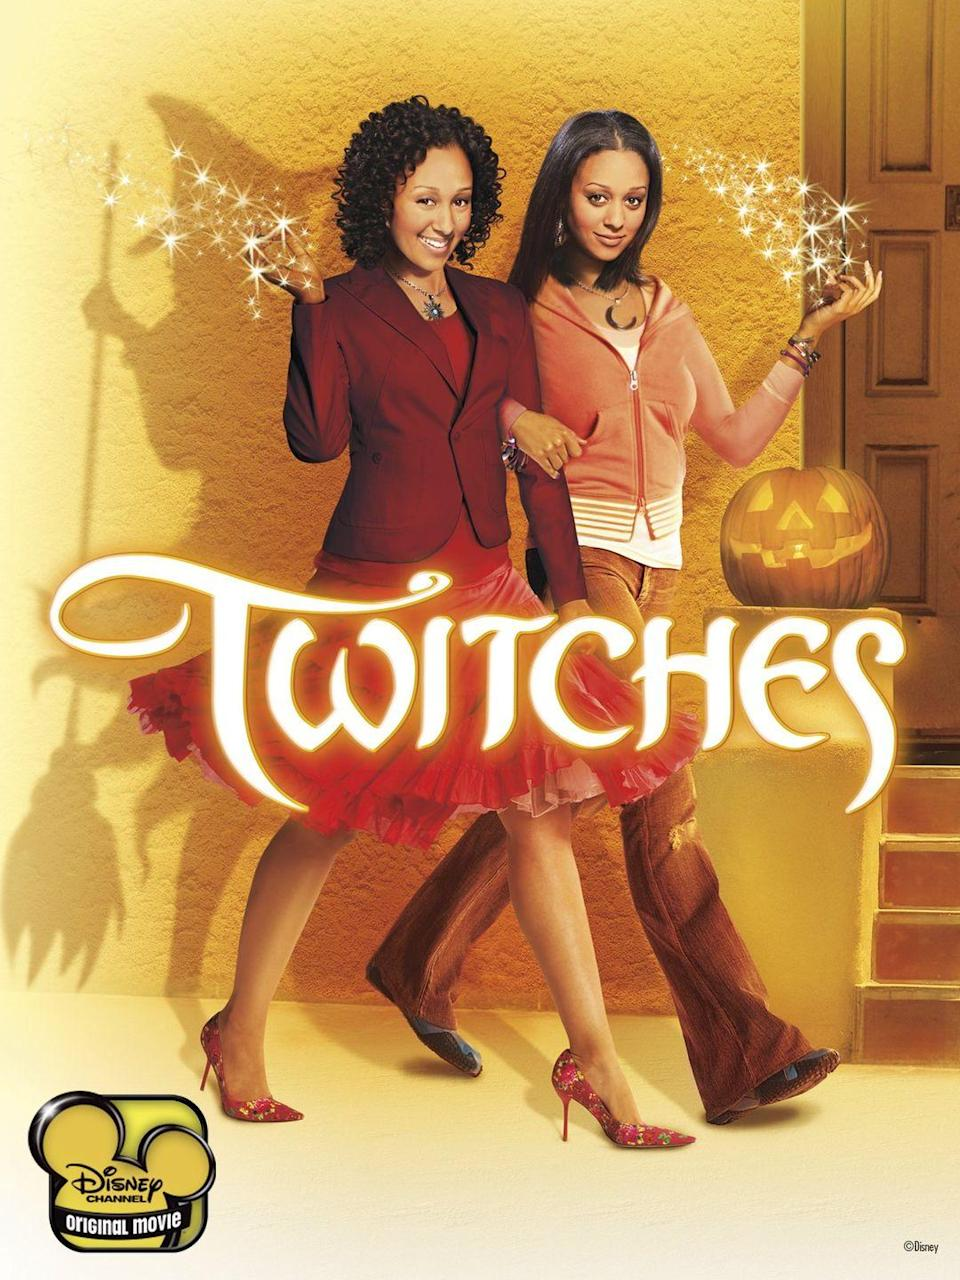 """<p><em>Twitches </em>is an all time Disney classic starring Tia and Tamara Mowry of <em>Sister, Sister </em>fame. Camryn and Alex were separated at birth when their home was taken over by the darkness. On their 21st birthday, the two find each other and learn of their magic powers. Together, they try to save their world before it's too late.</p><p><a class=""""link rapid-noclick-resp"""" href=""""https://go.redirectingat.com?id=74968X1596630&url=https%3A%2F%2Fwww.disneyplus.com%2Fmovies%2Ftwitches%2F3jmJ2lNPGpS7&sref=https%3A%2F%2Fwww.seventeen.com%2Fcelebrity%2Fmovies-tv%2Fg29354714%2Fnon-scary-halloween-movies%2F"""" rel=""""nofollow noopener"""" target=""""_blank"""" data-ylk=""""slk:Watch Now"""">Watch Now</a></p>"""